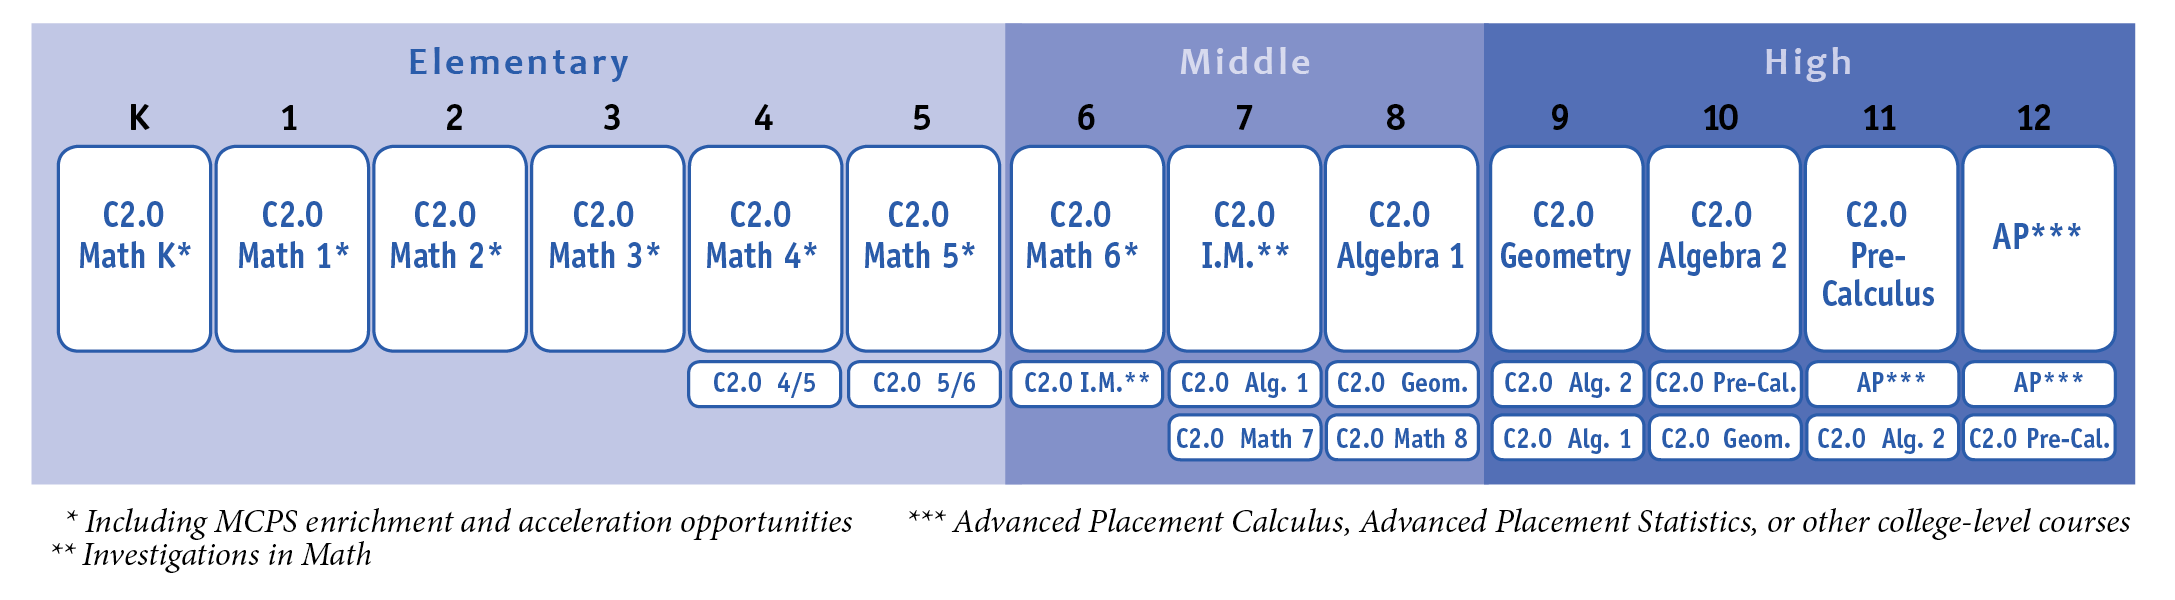 math level subjects in college writing services org